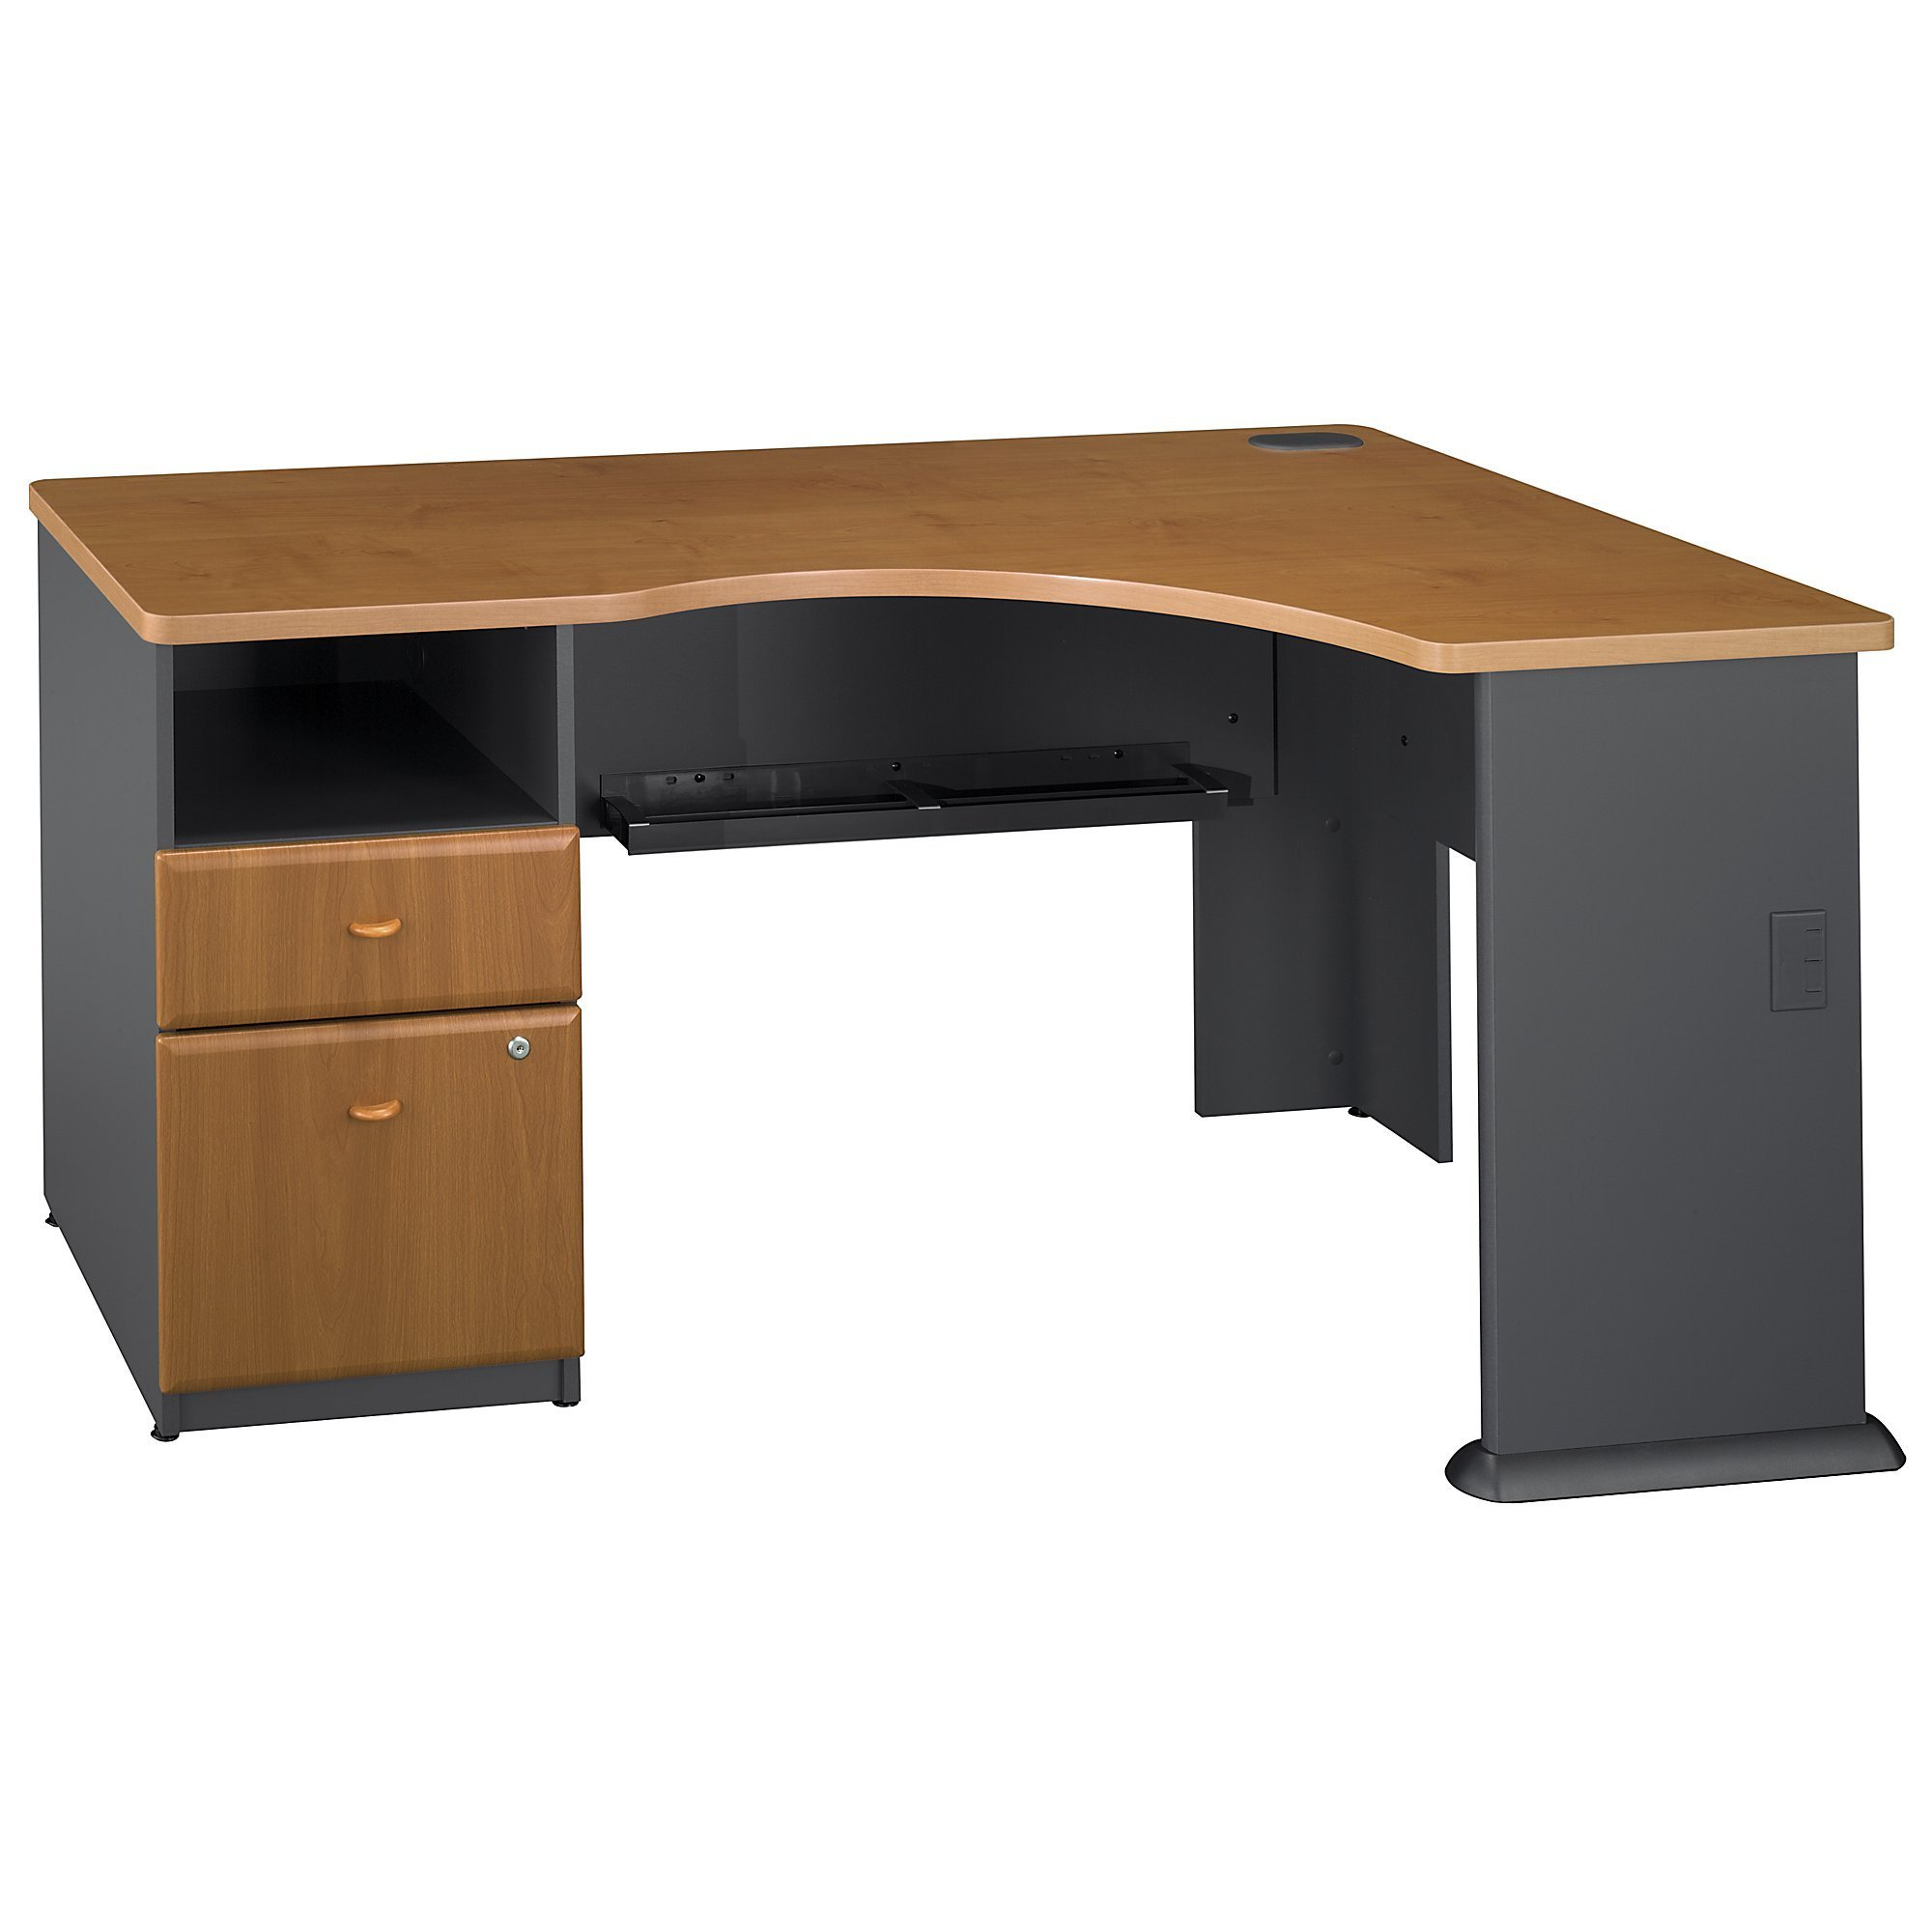 Bush Business Furniture Series A Single 2 Drawer Pedestal Corner Desk, Natural Cherry by Bush Business Furniture